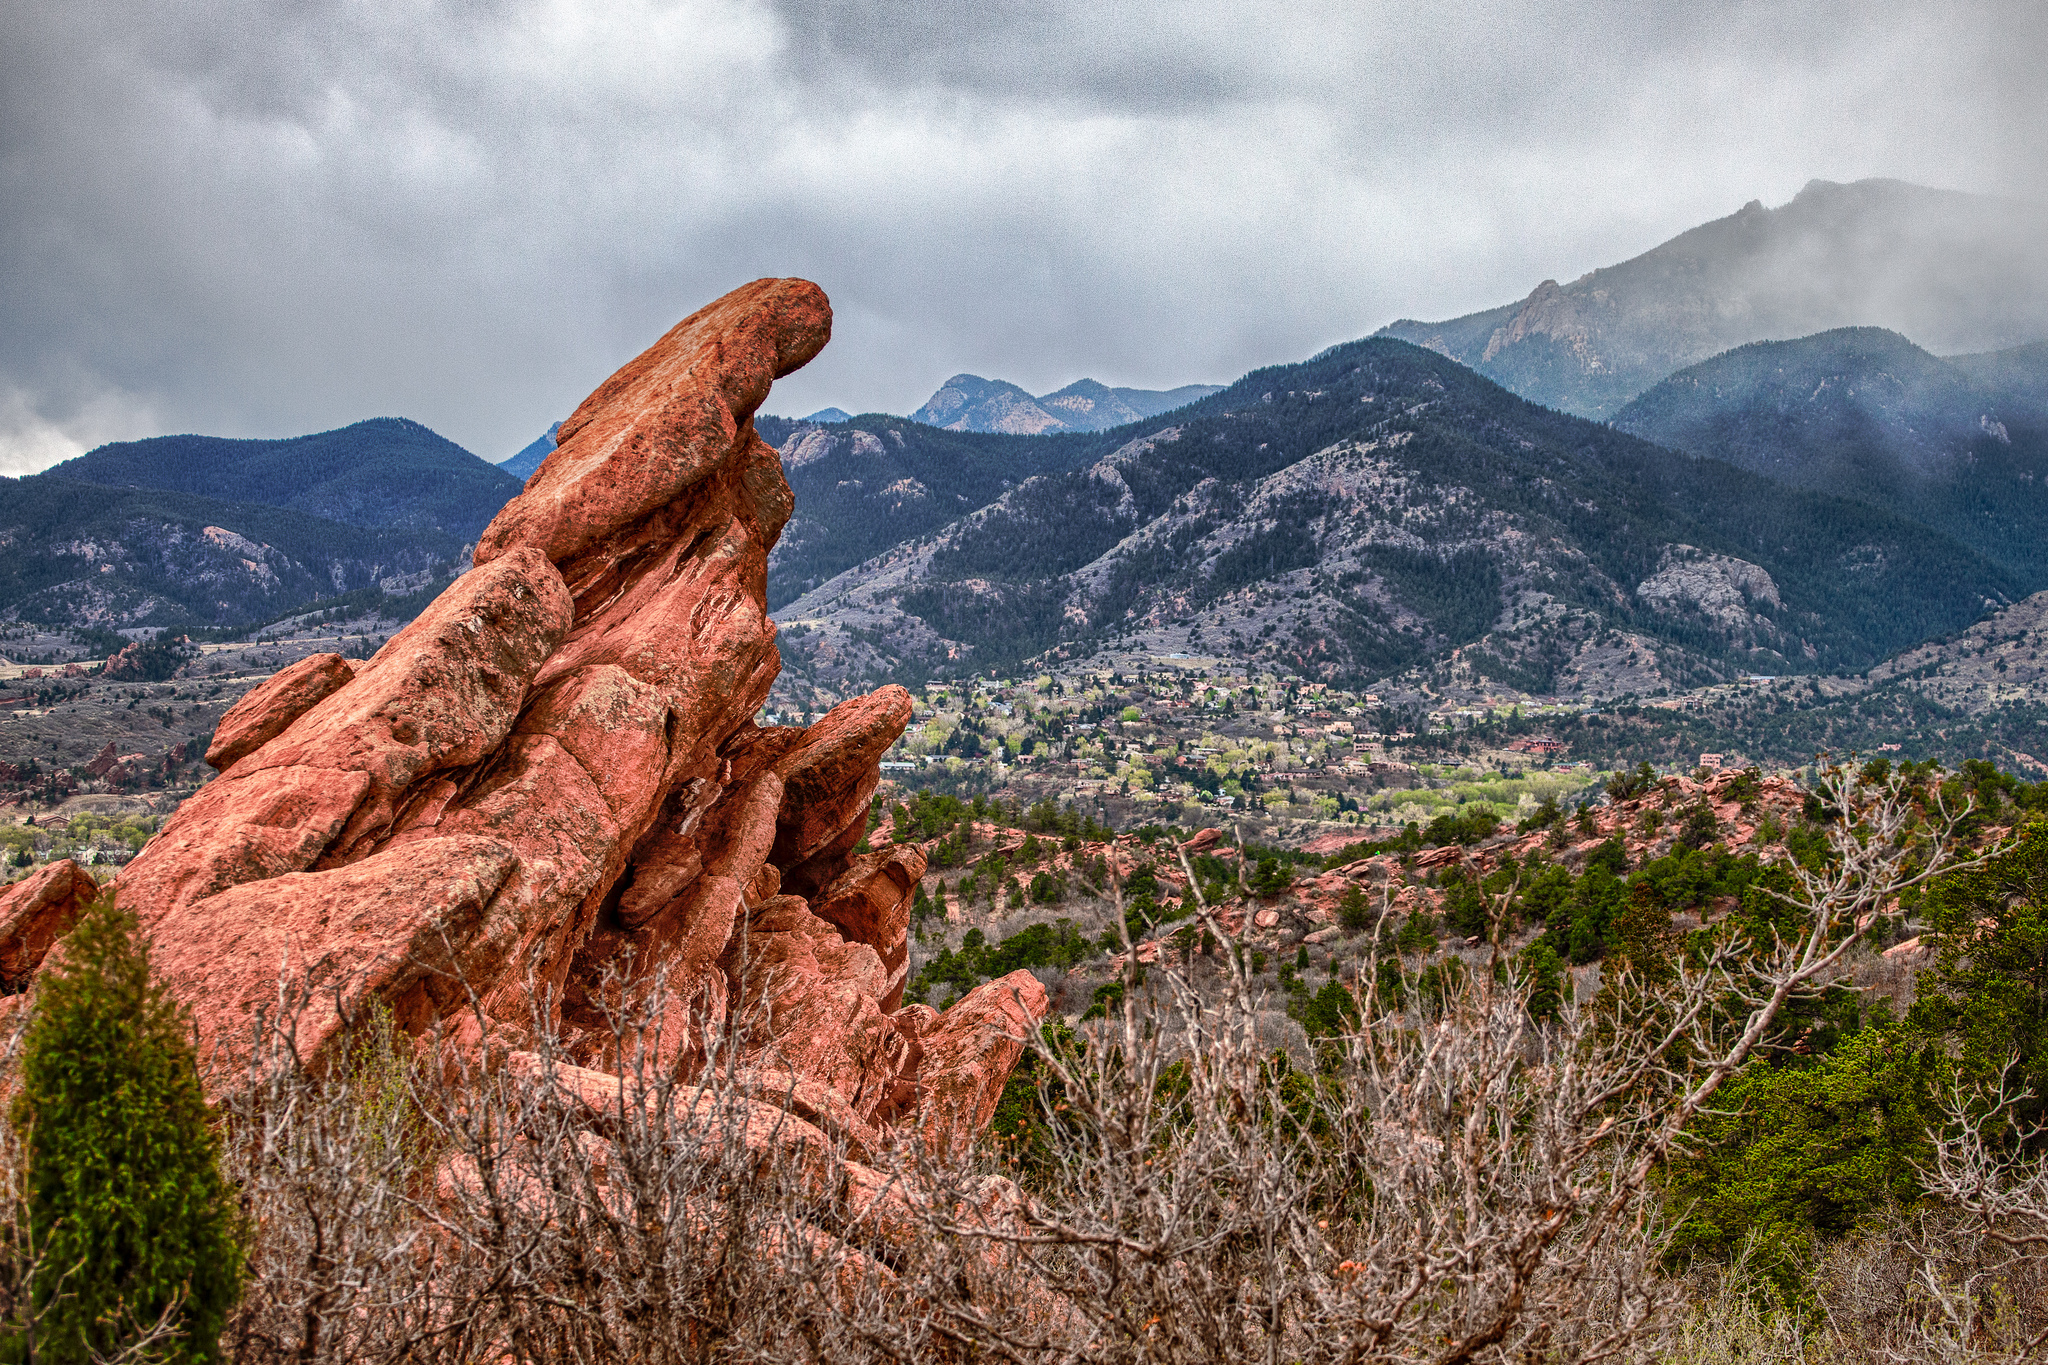 Garden of the gods geological feature in colorado thousand wonders for Quality inn garden of the gods